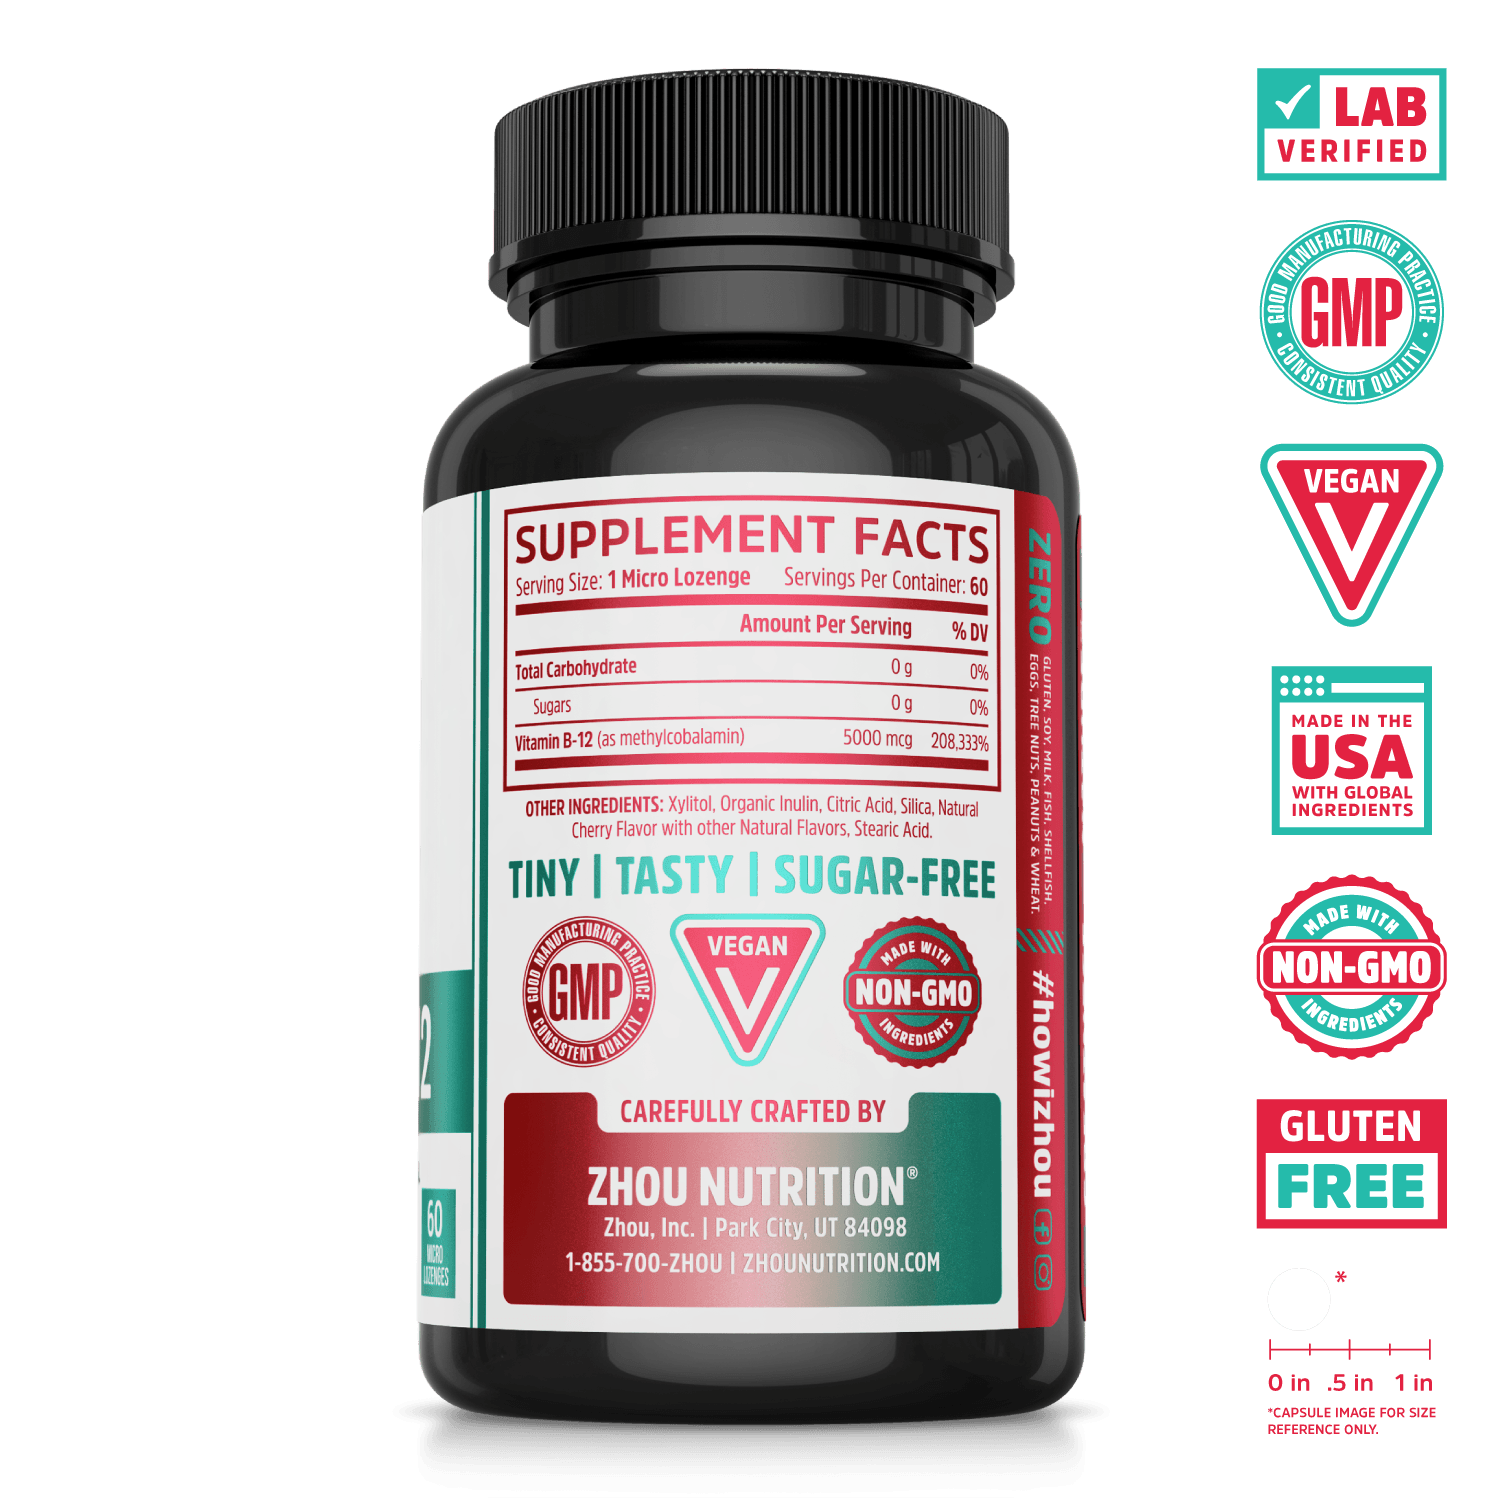 Zhou Nutrition Methyl B-12 sublingual supplement cherry flavor. Lab verified, good manufacturing practices, vegan, made in USA with global ingredients, made with non-GMO ingredients, gluten free.